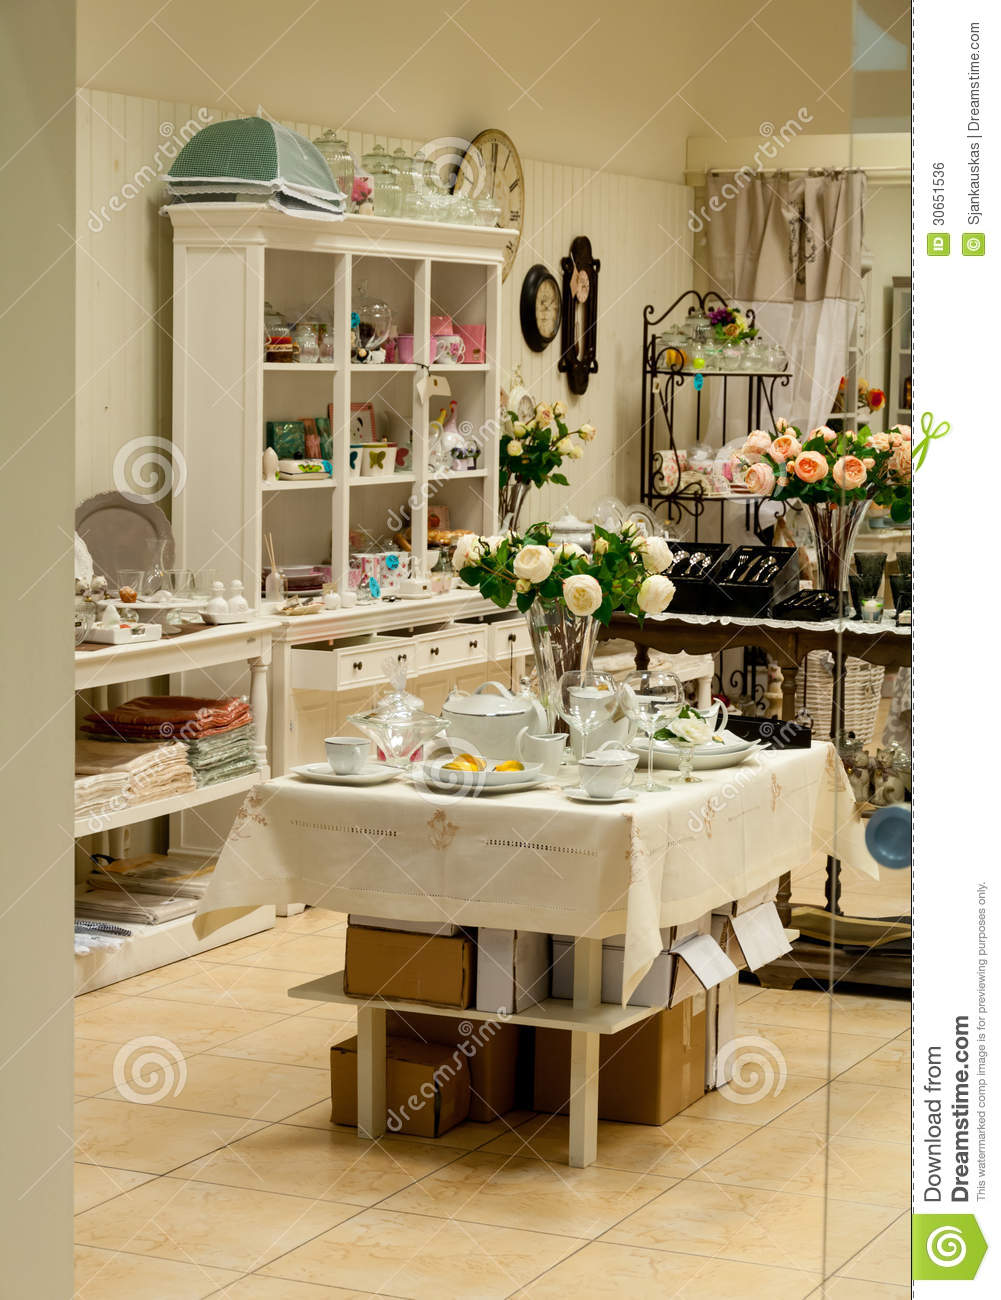 Home decor and dishes shop royalty free stock image for Home goods decor